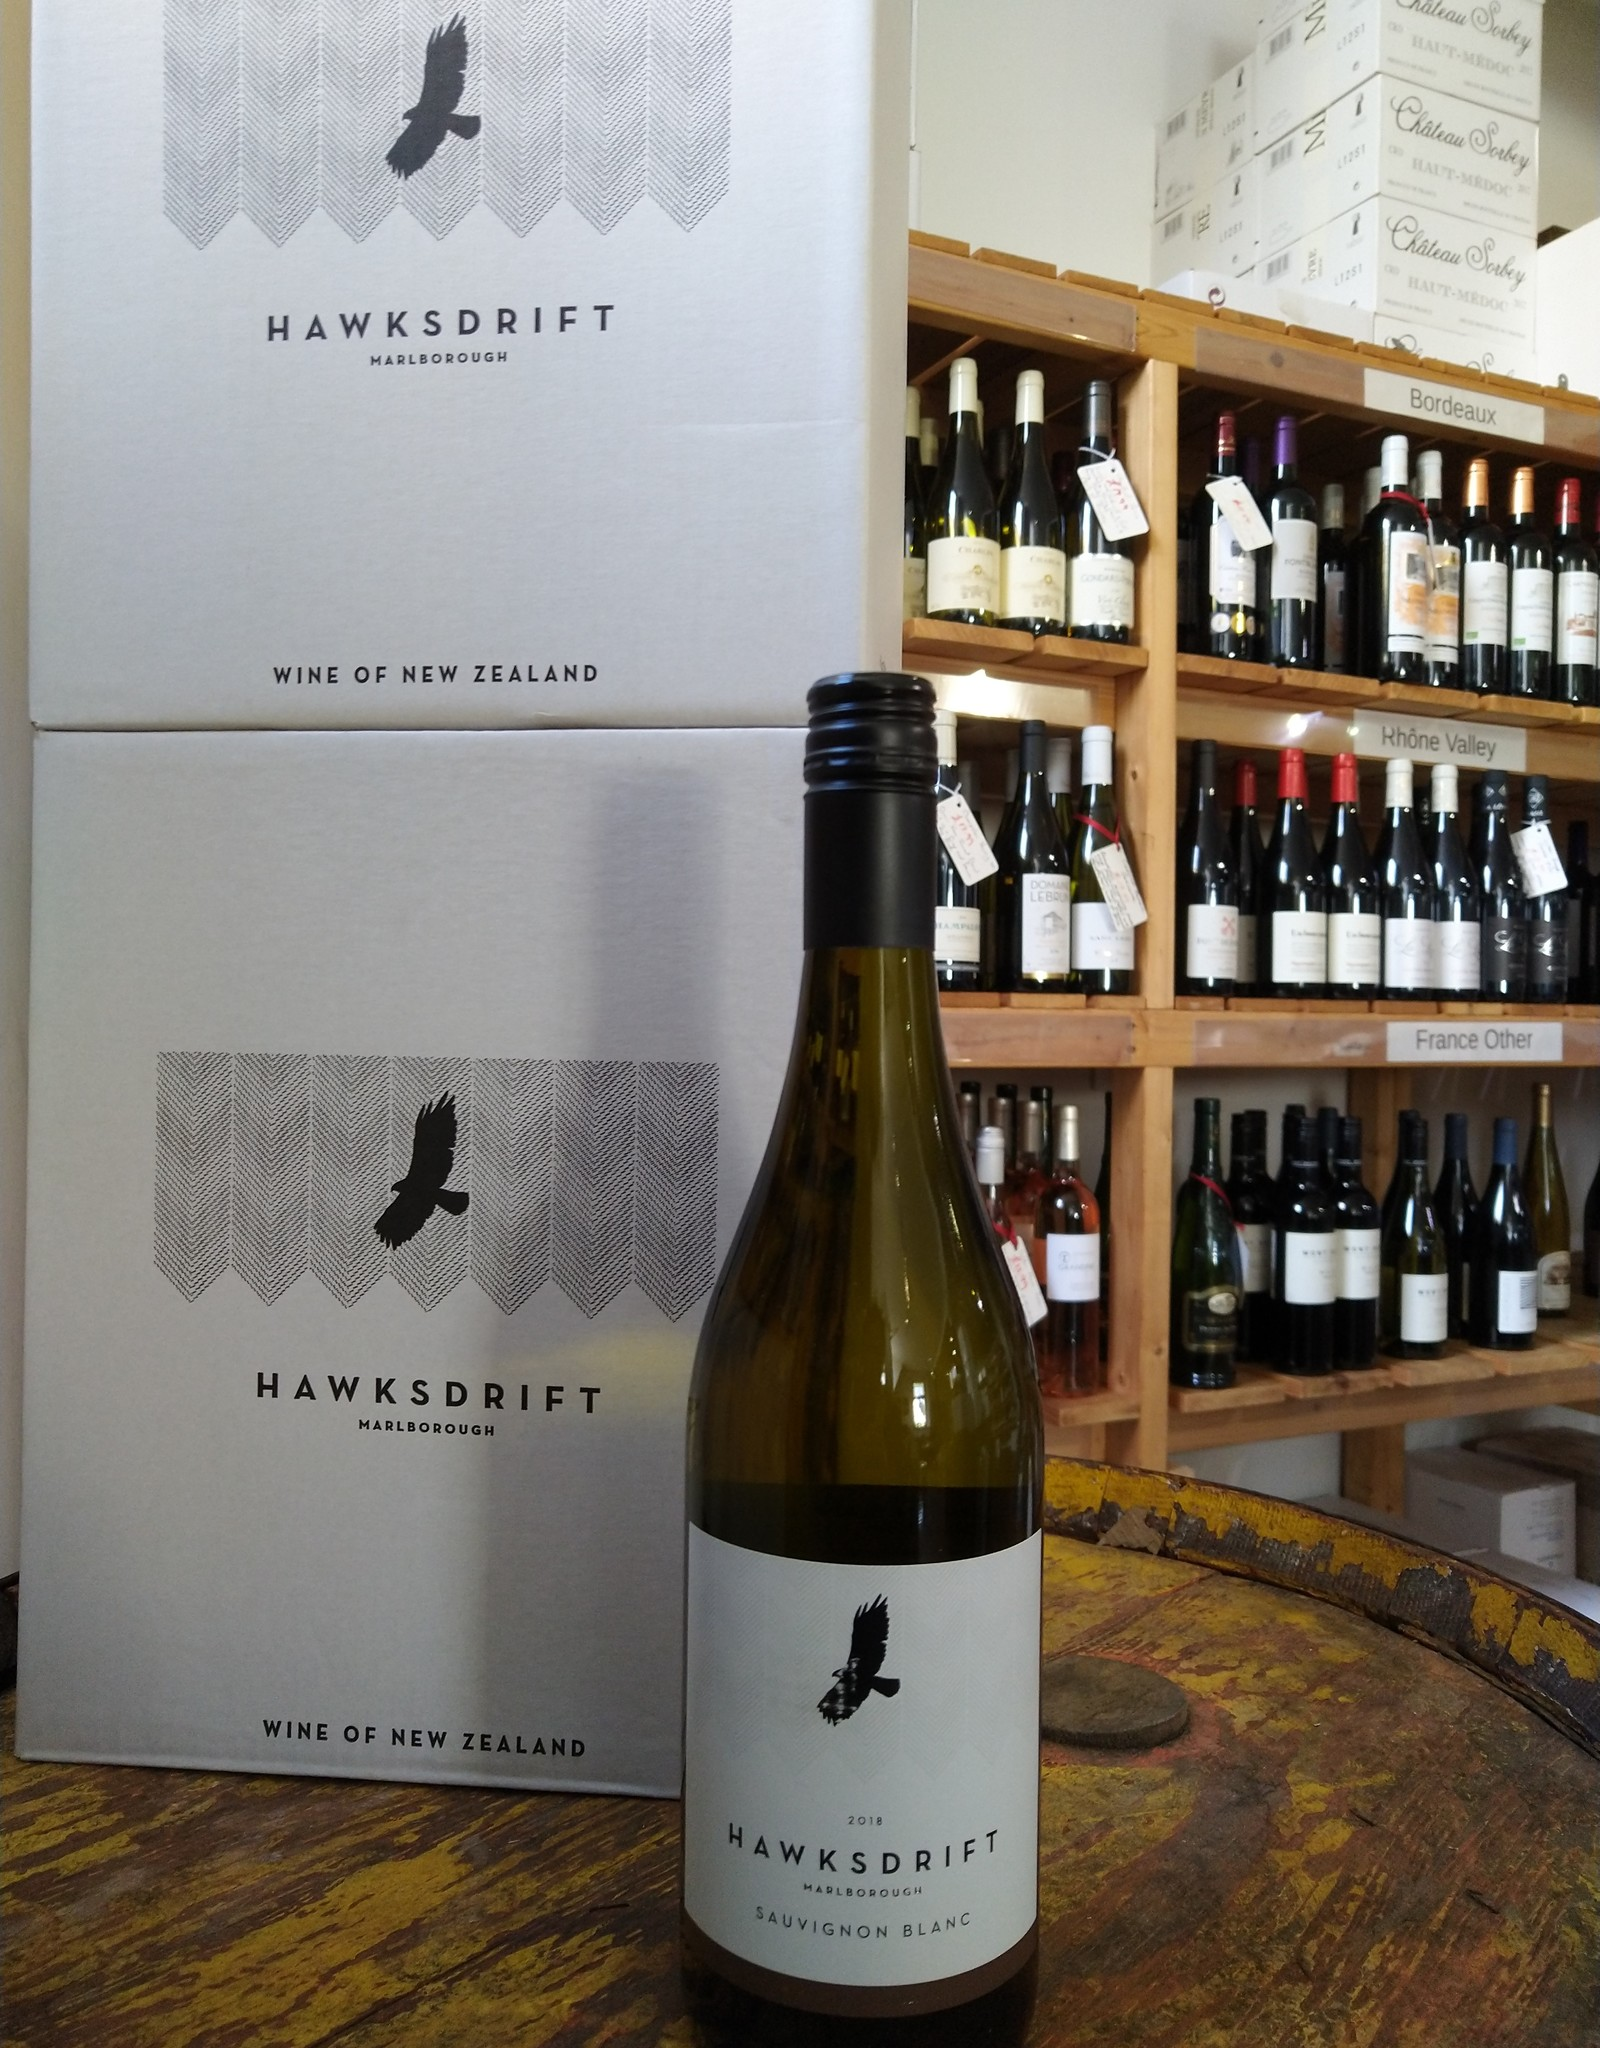 Vindependents Case Deal £120 - 12 x Hawksdrift Sauvignon Blanc, Usually £191.88